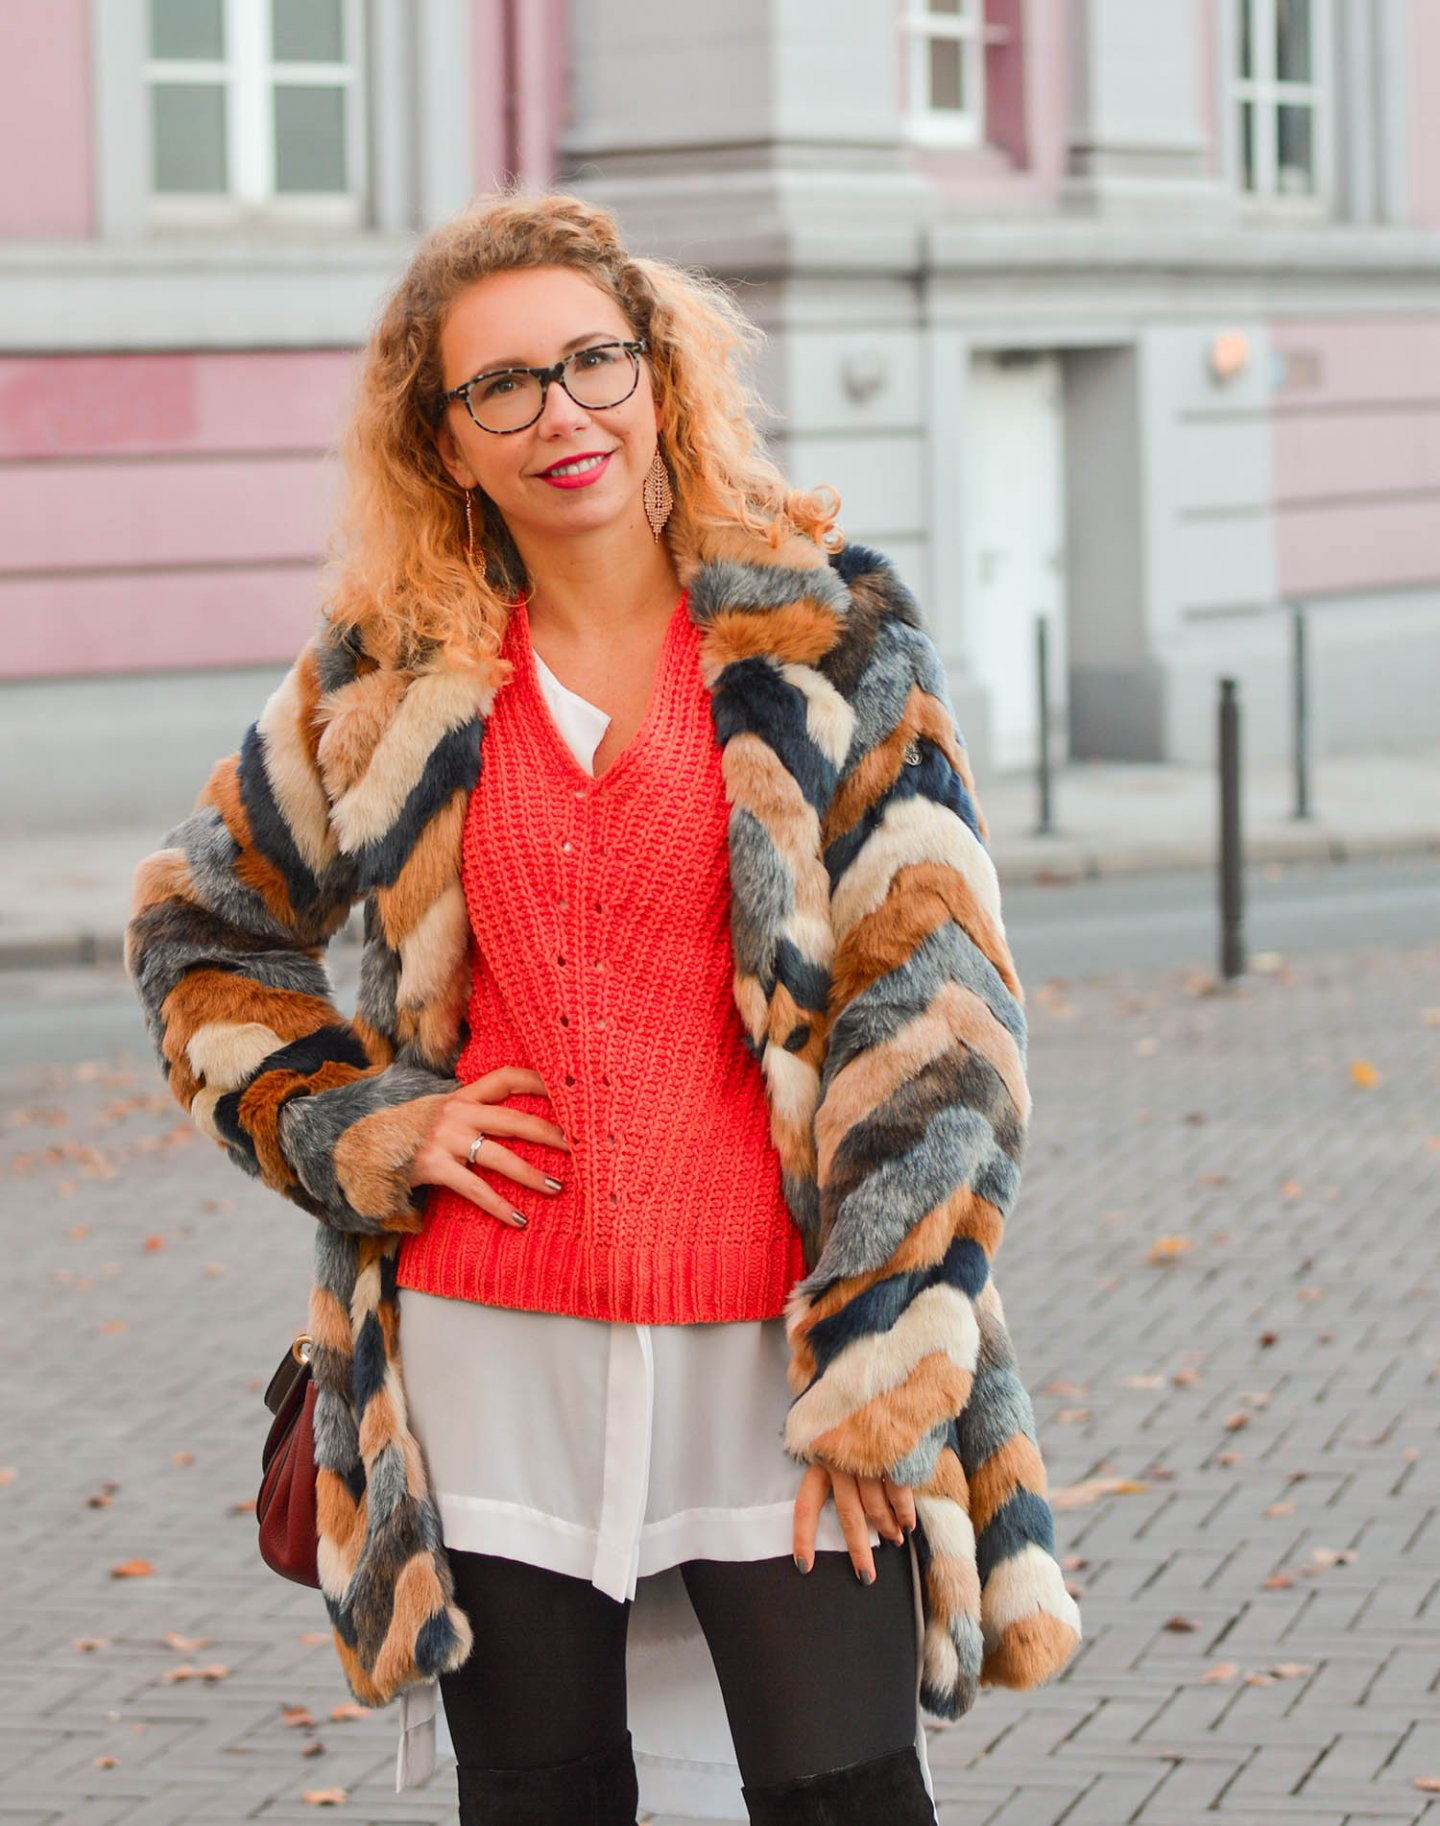 Fake-Fur-Coat-Layering-Overknees-Winter-Outfit-Kationette-Fashionblogger-Germany